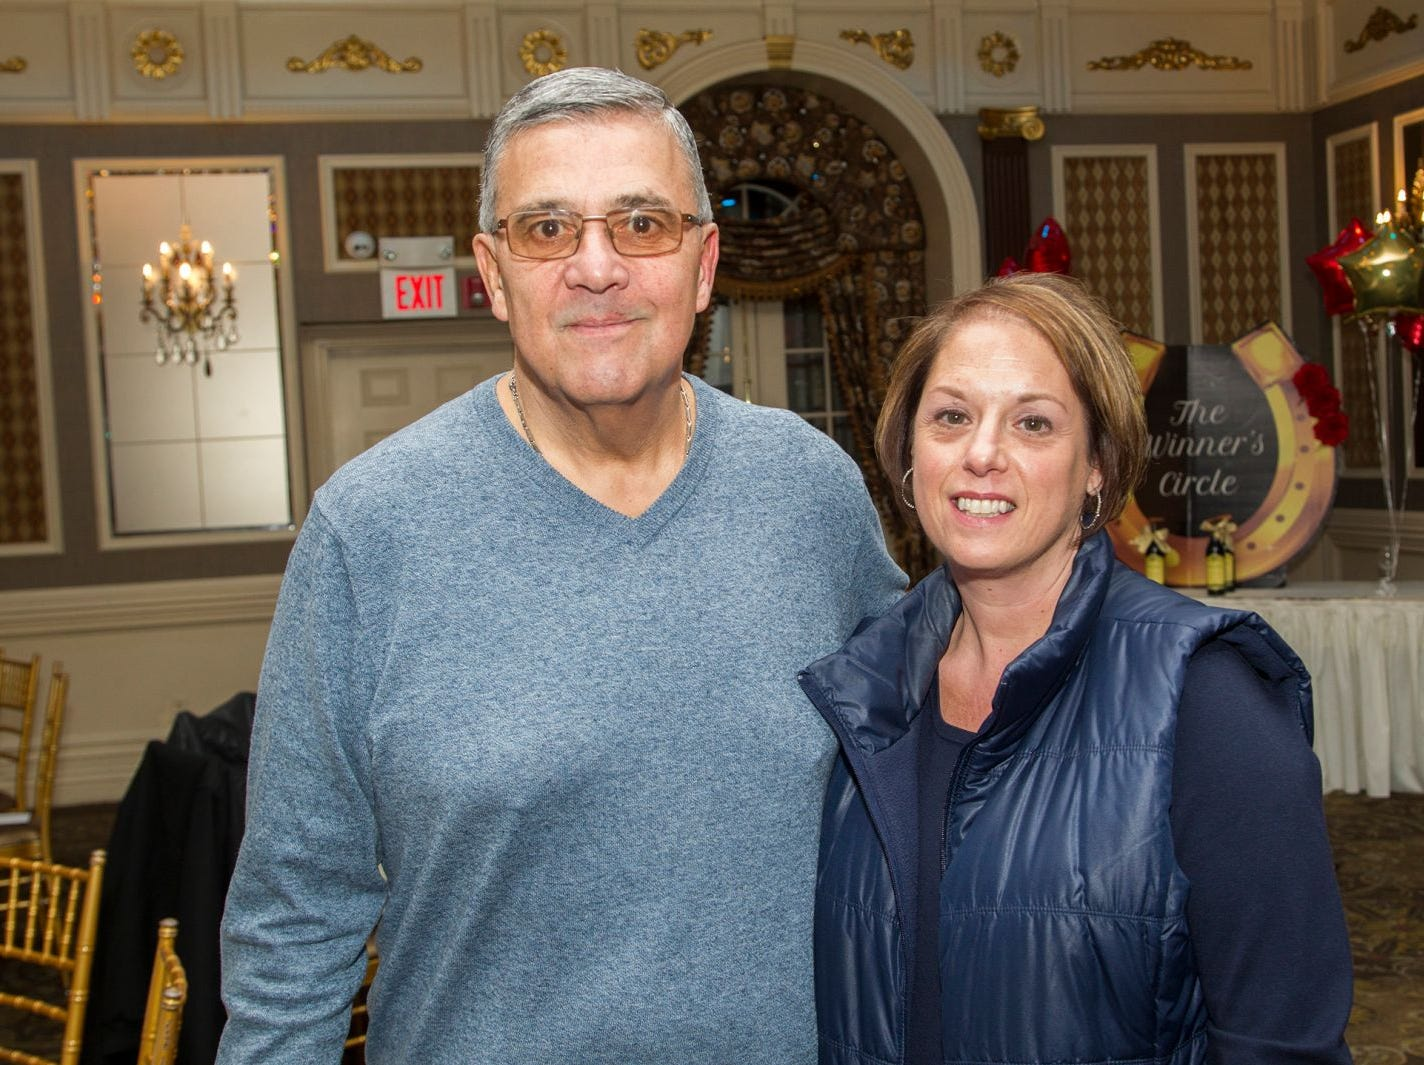 Joe and Christine Pasquarlello. A Night at the Races hosted by OASIS at the Brownstone in Paterson. 2/7/2019